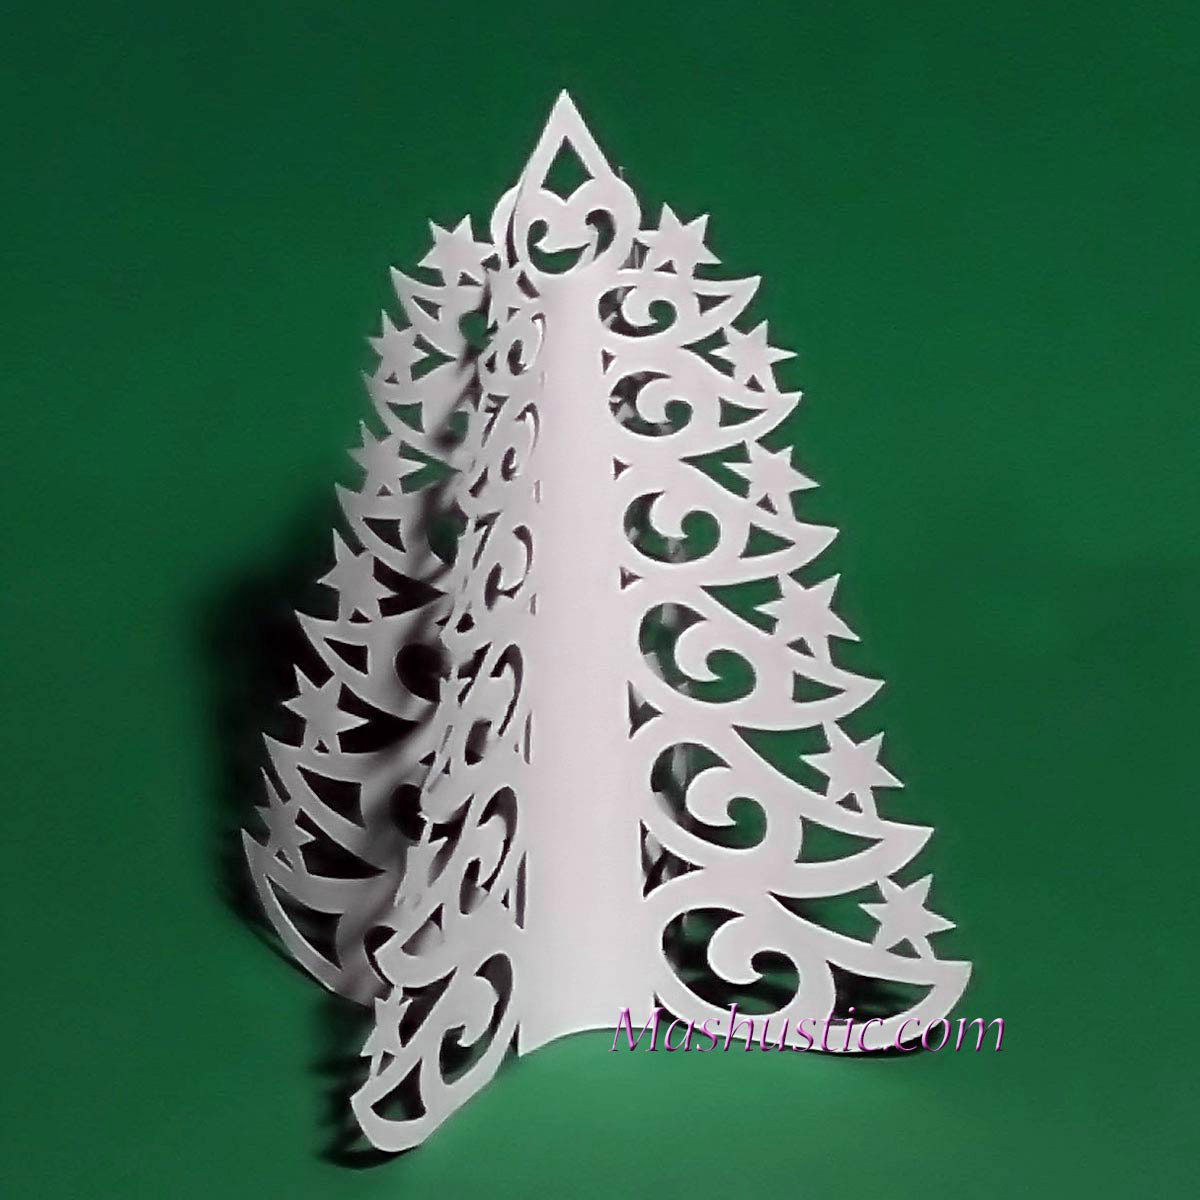 3d Paper Christmas Tree Template.Christmas Paper Tree To Make Mashustic Com